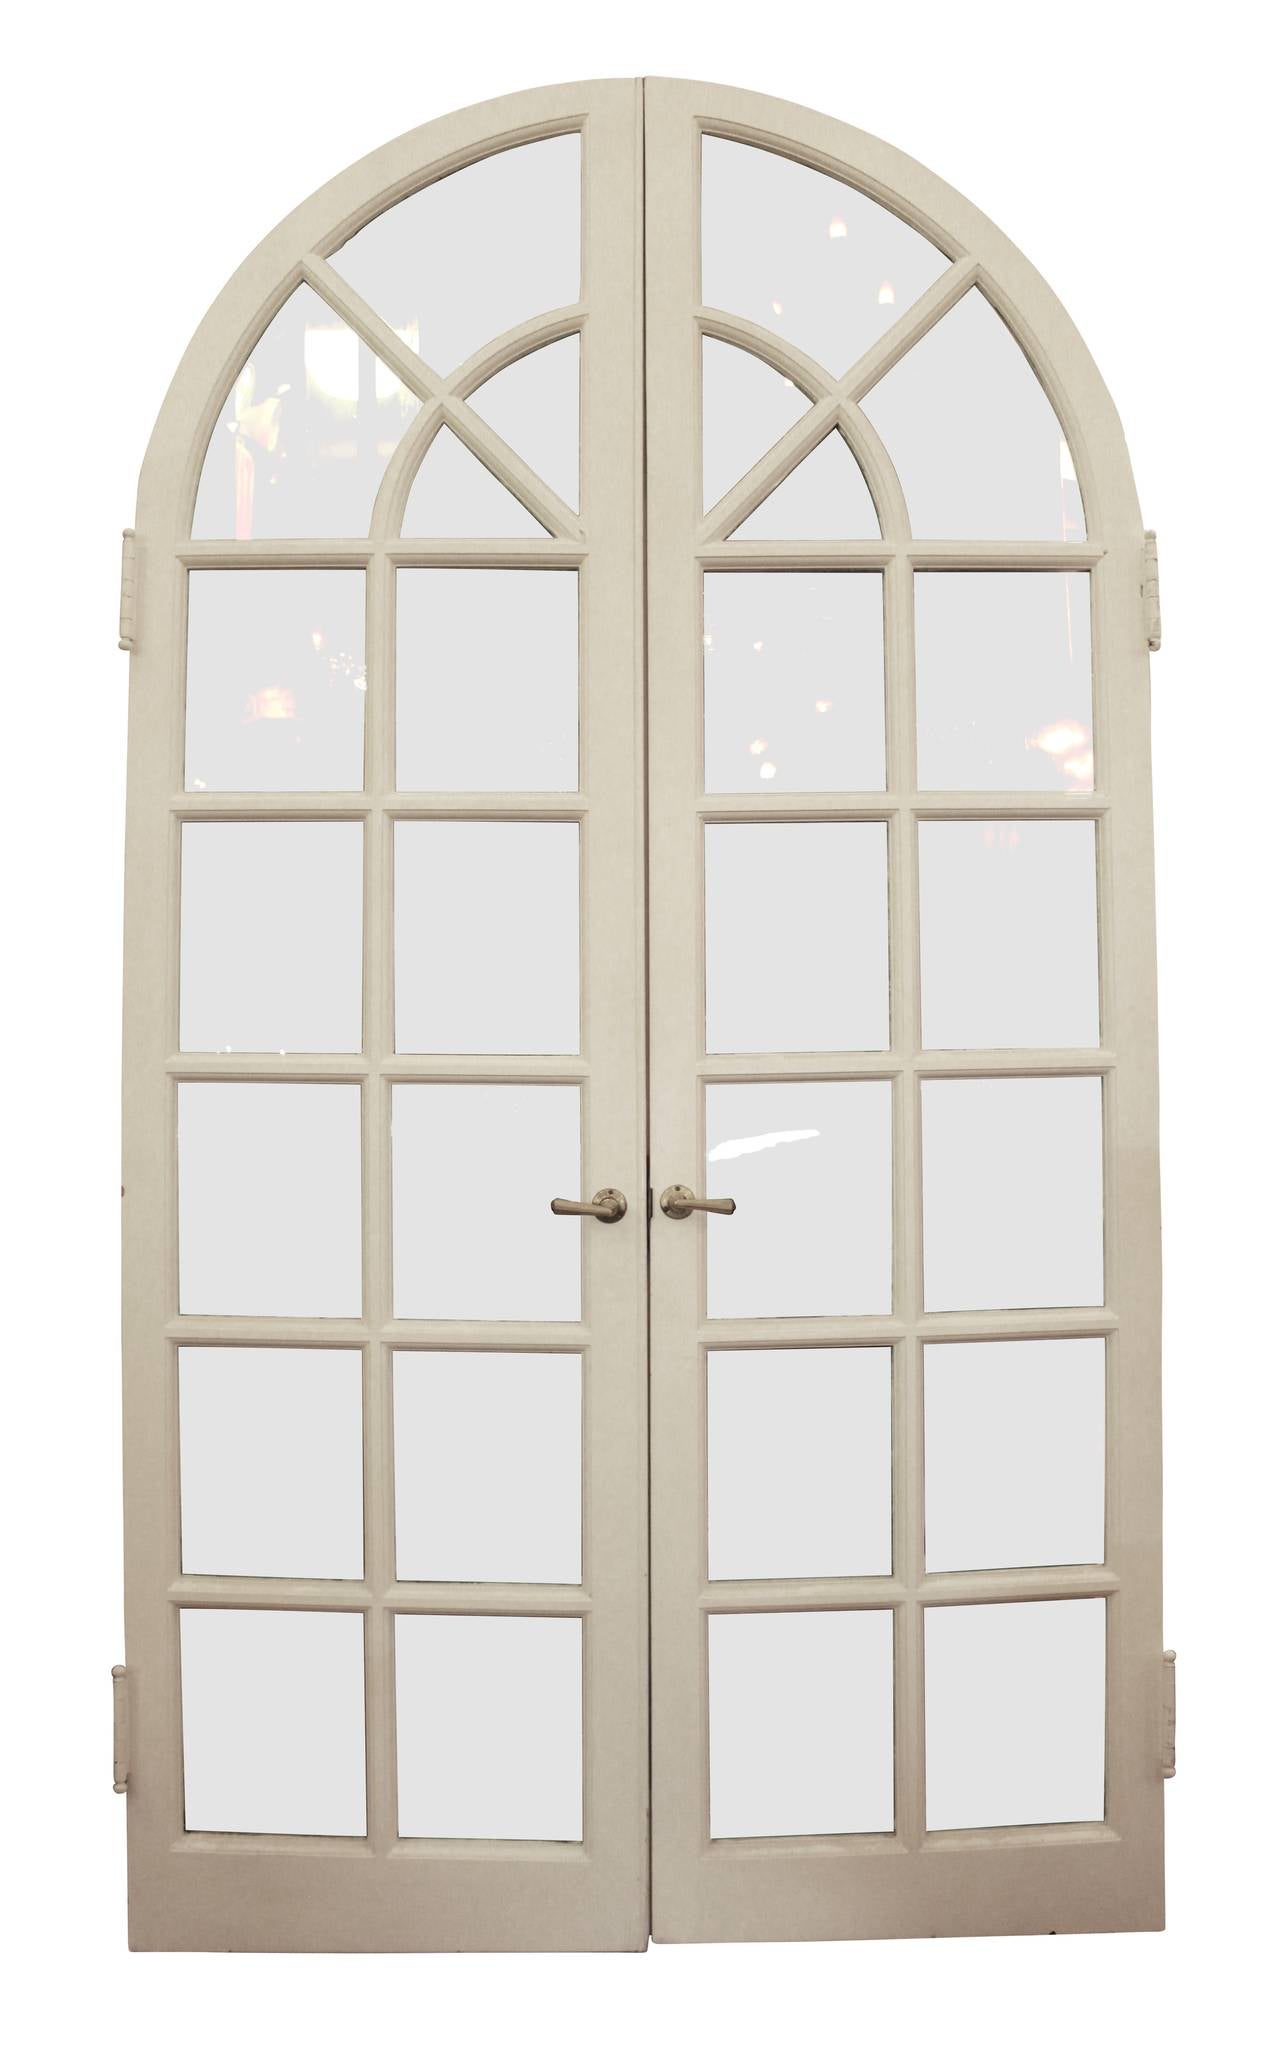 2050 #3F3126 This Wooden White Arched French Doors Is No Longer Available. image Arched Wood Entry Doors 40831280